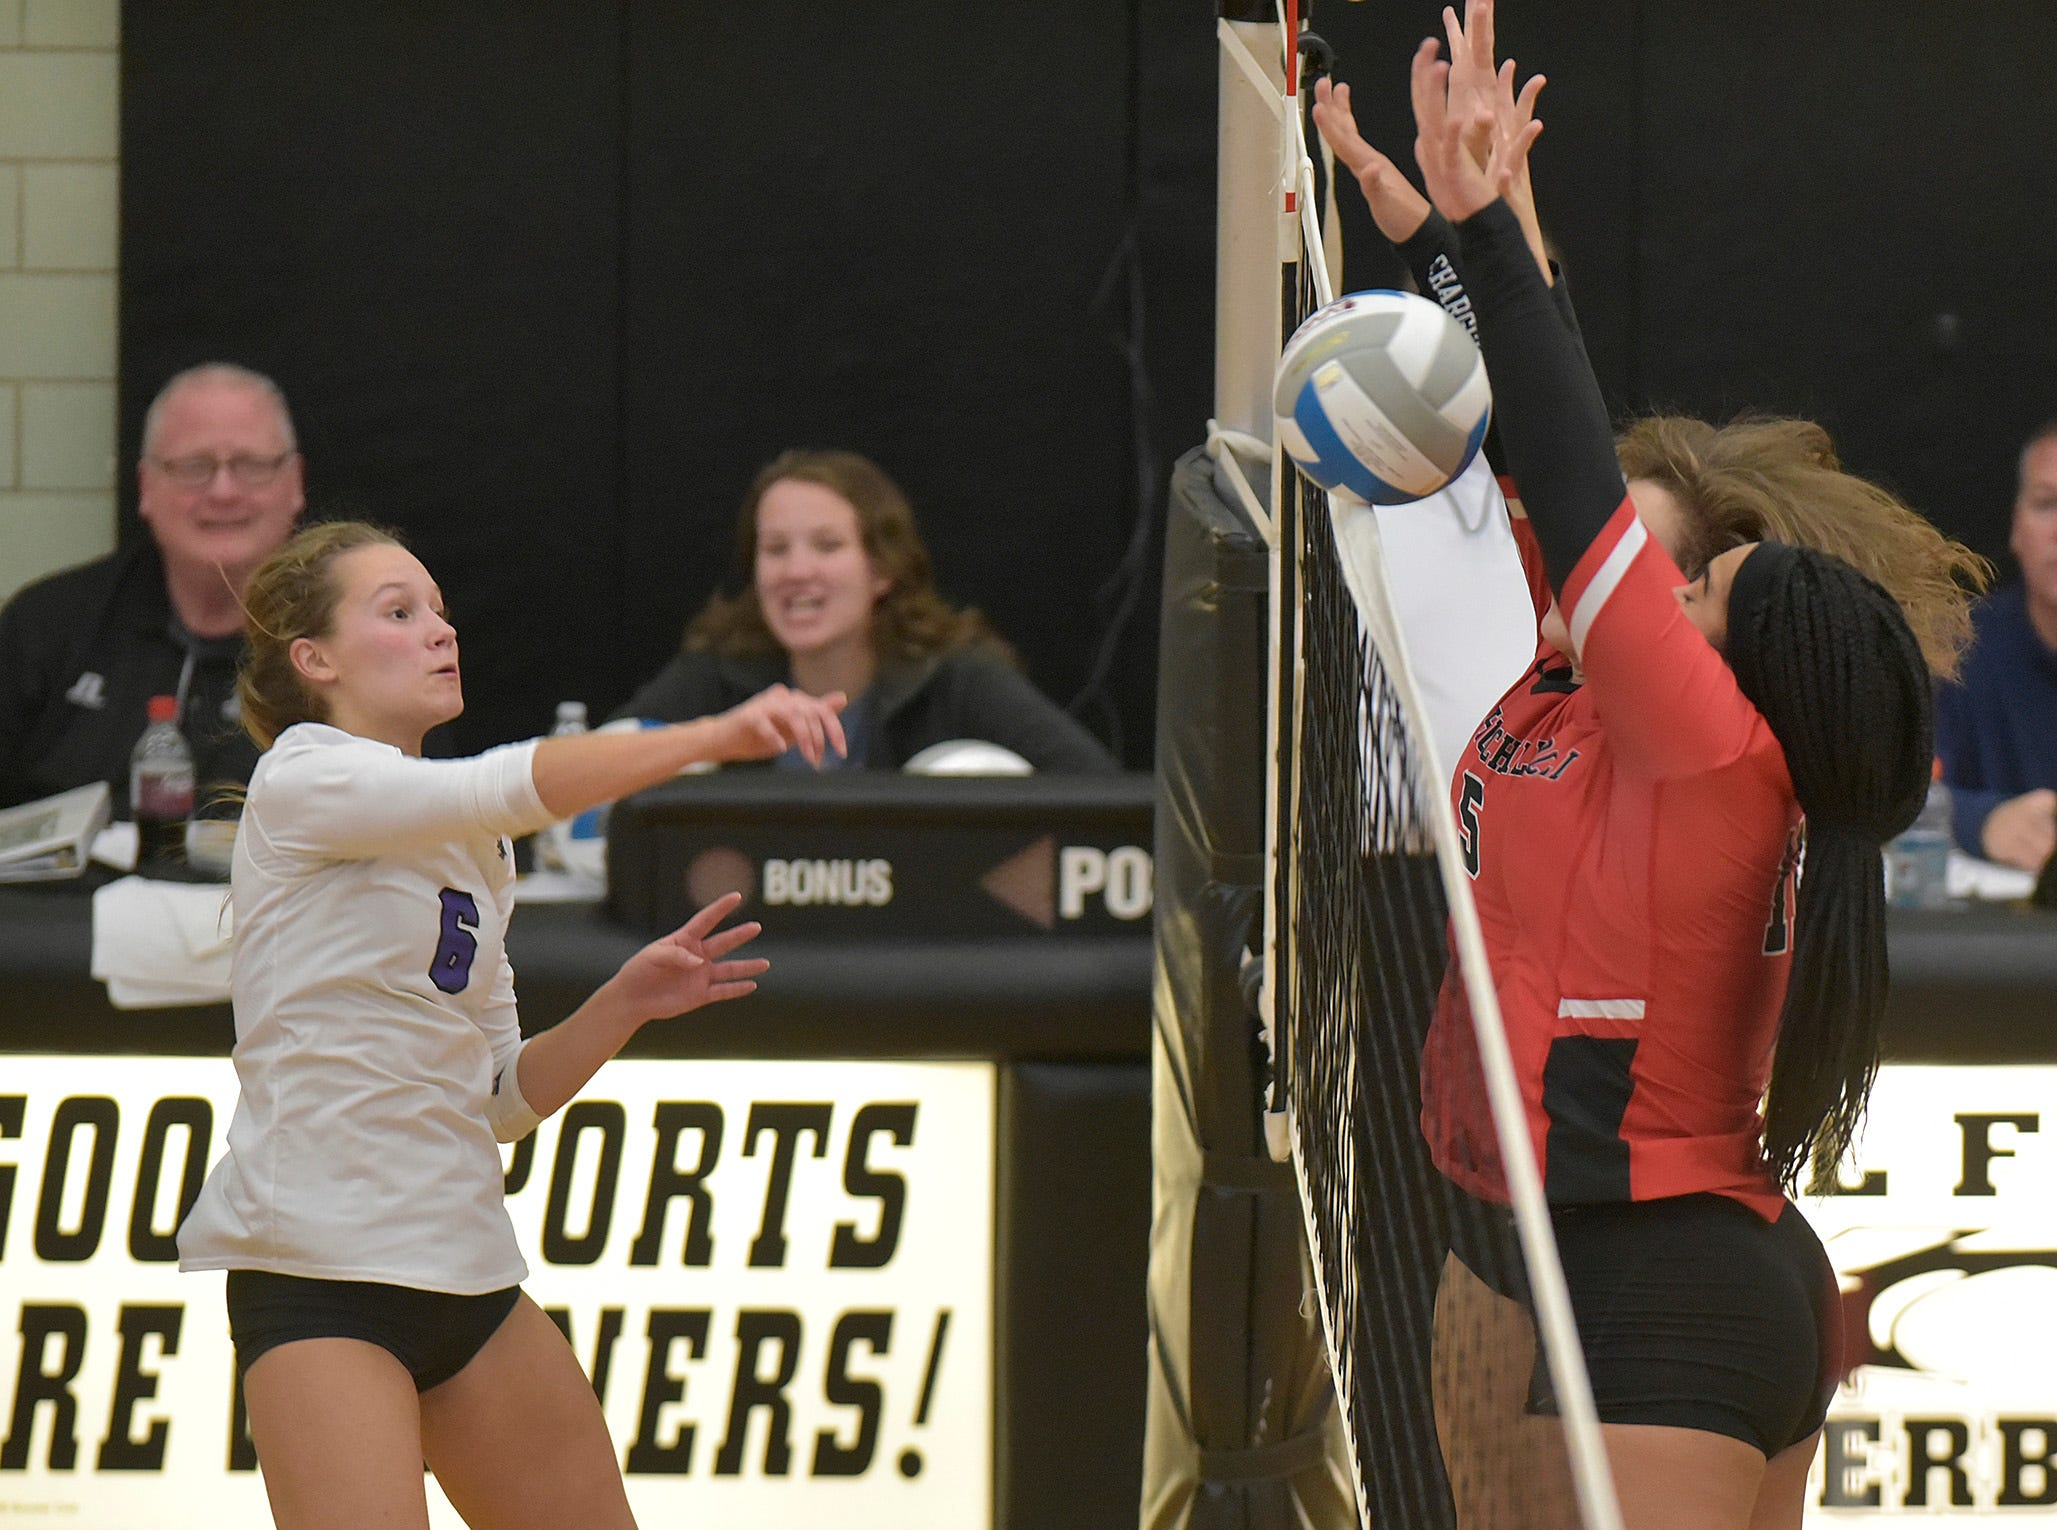 Woodhaven's Jenna Kekich (6) tries for the kill, but Maya Grant (11) and Grace Facione (5) deny the point.